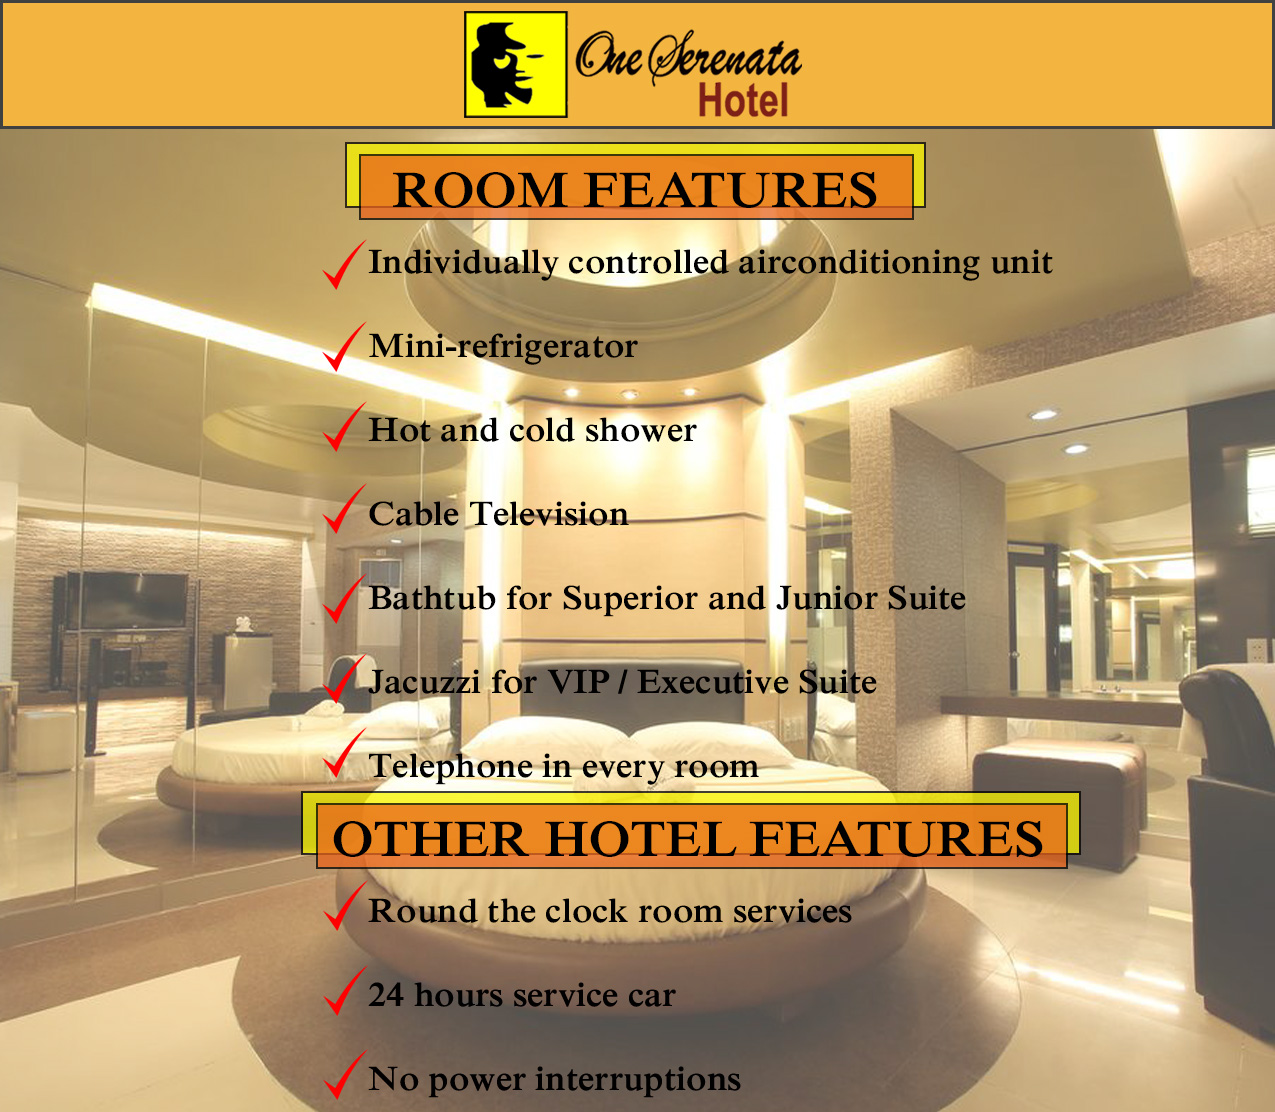 ROOM FEATURES 2